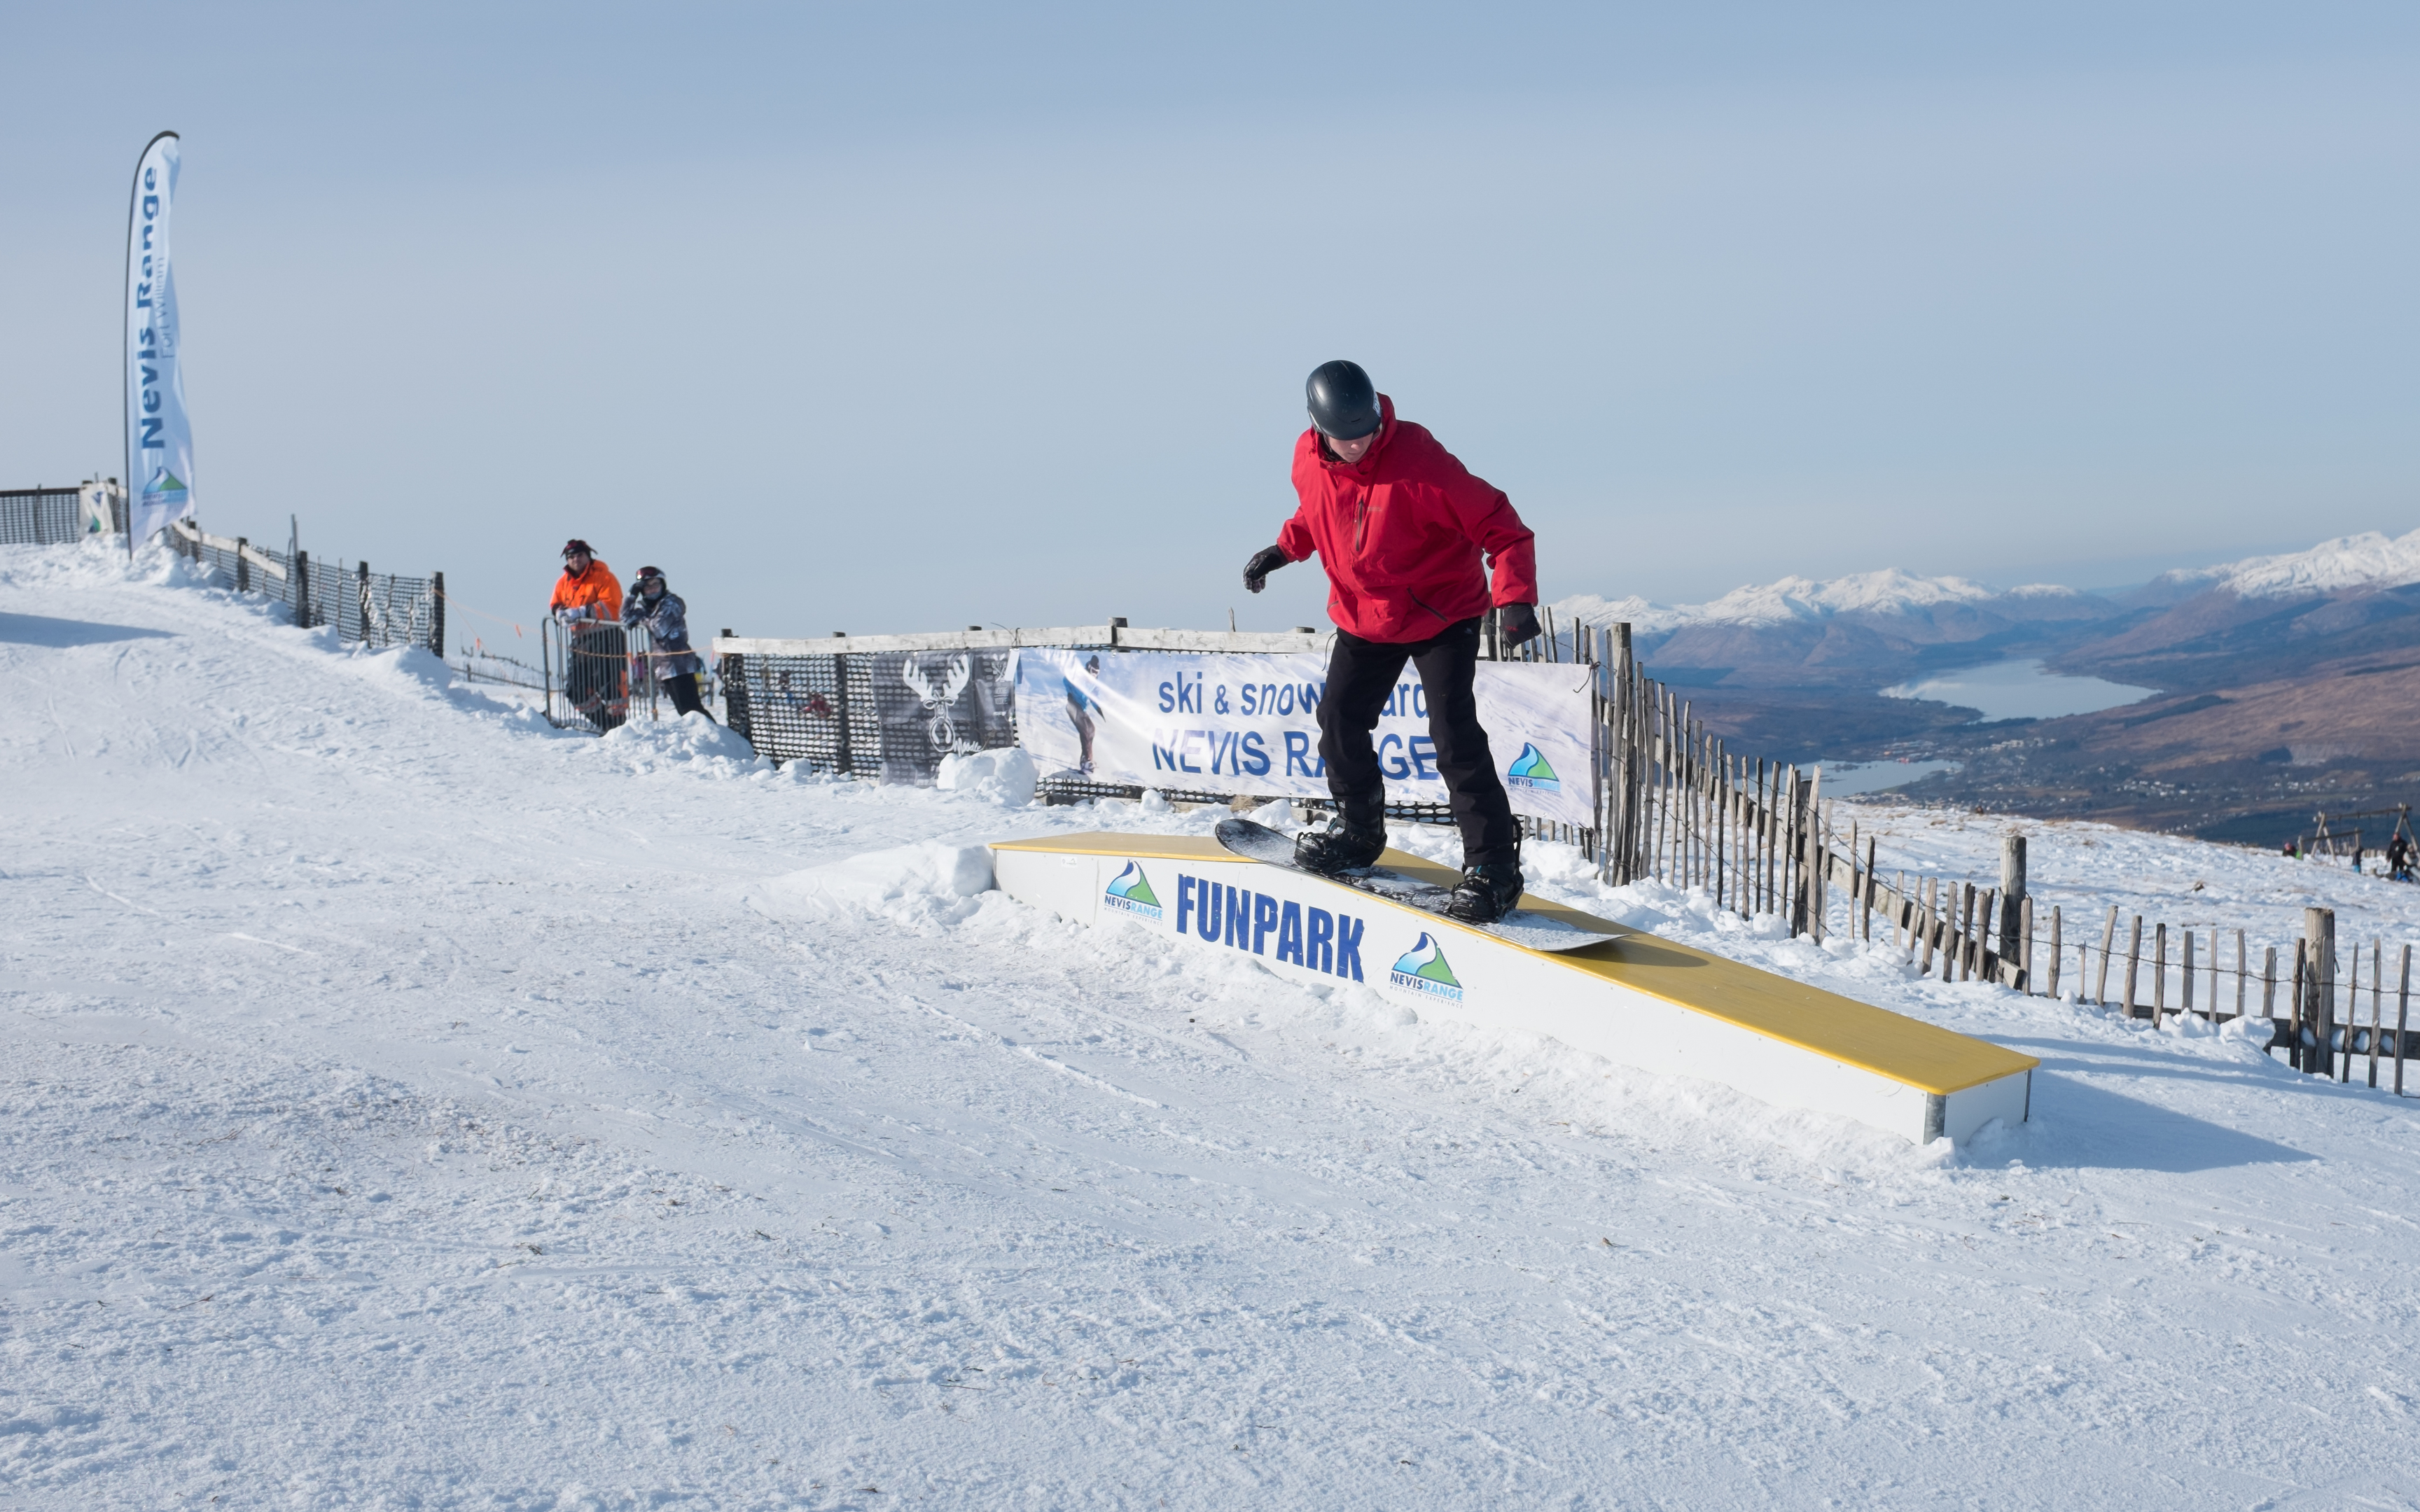 A snowboarder tries the new Rail Park at Nevis Range